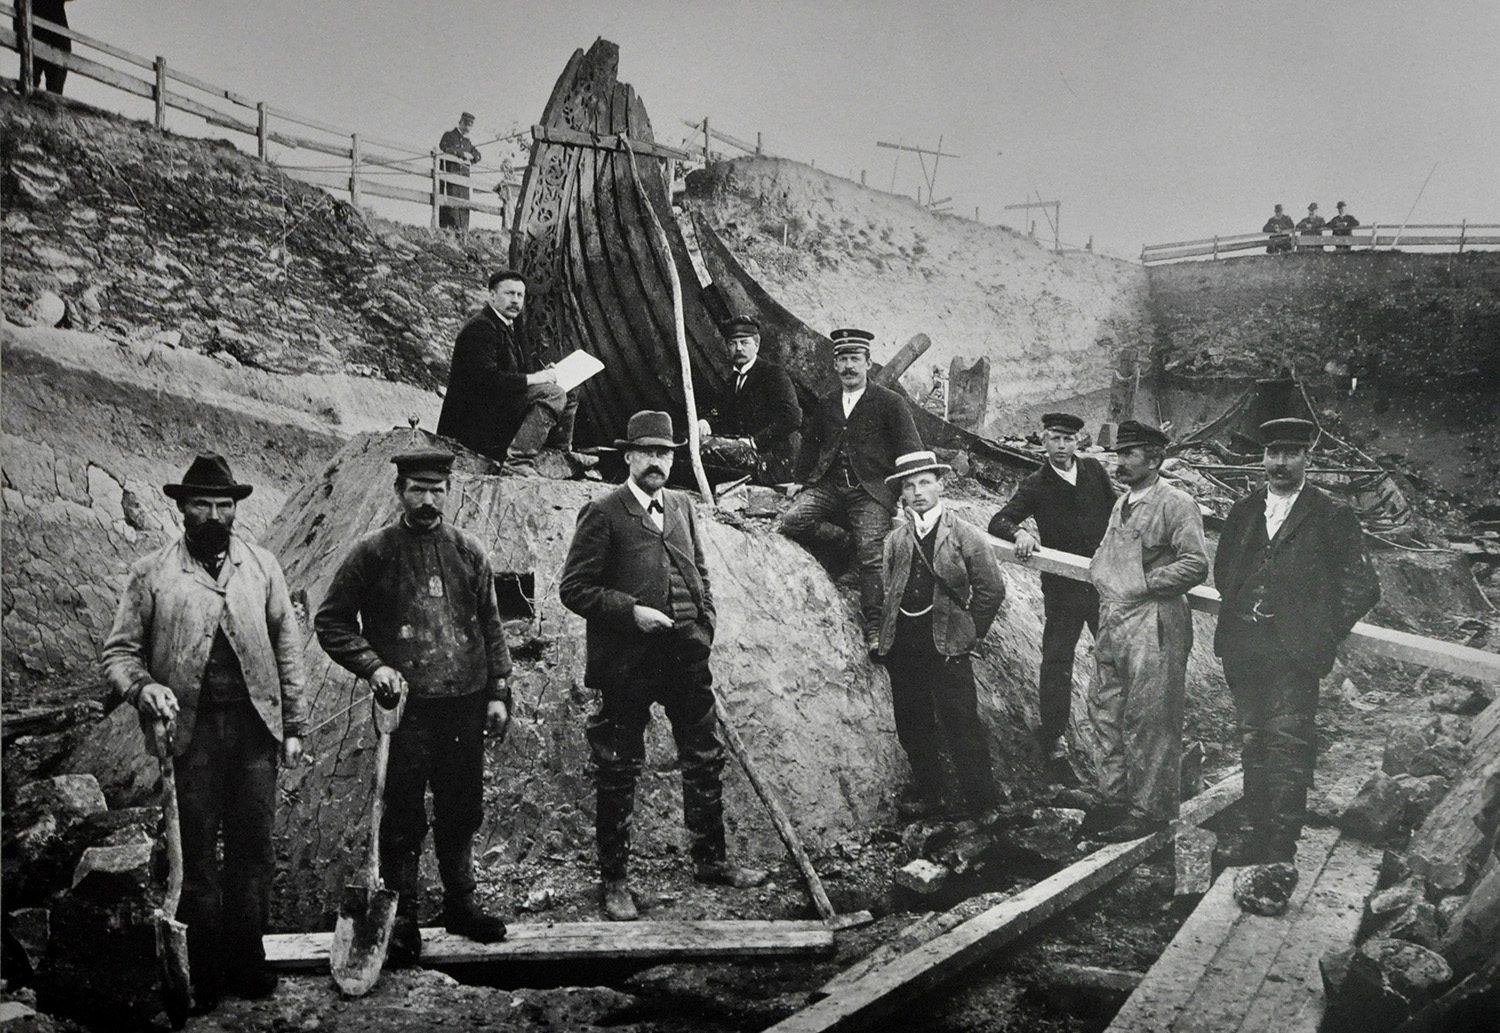 Excavation of the Oseberg ship